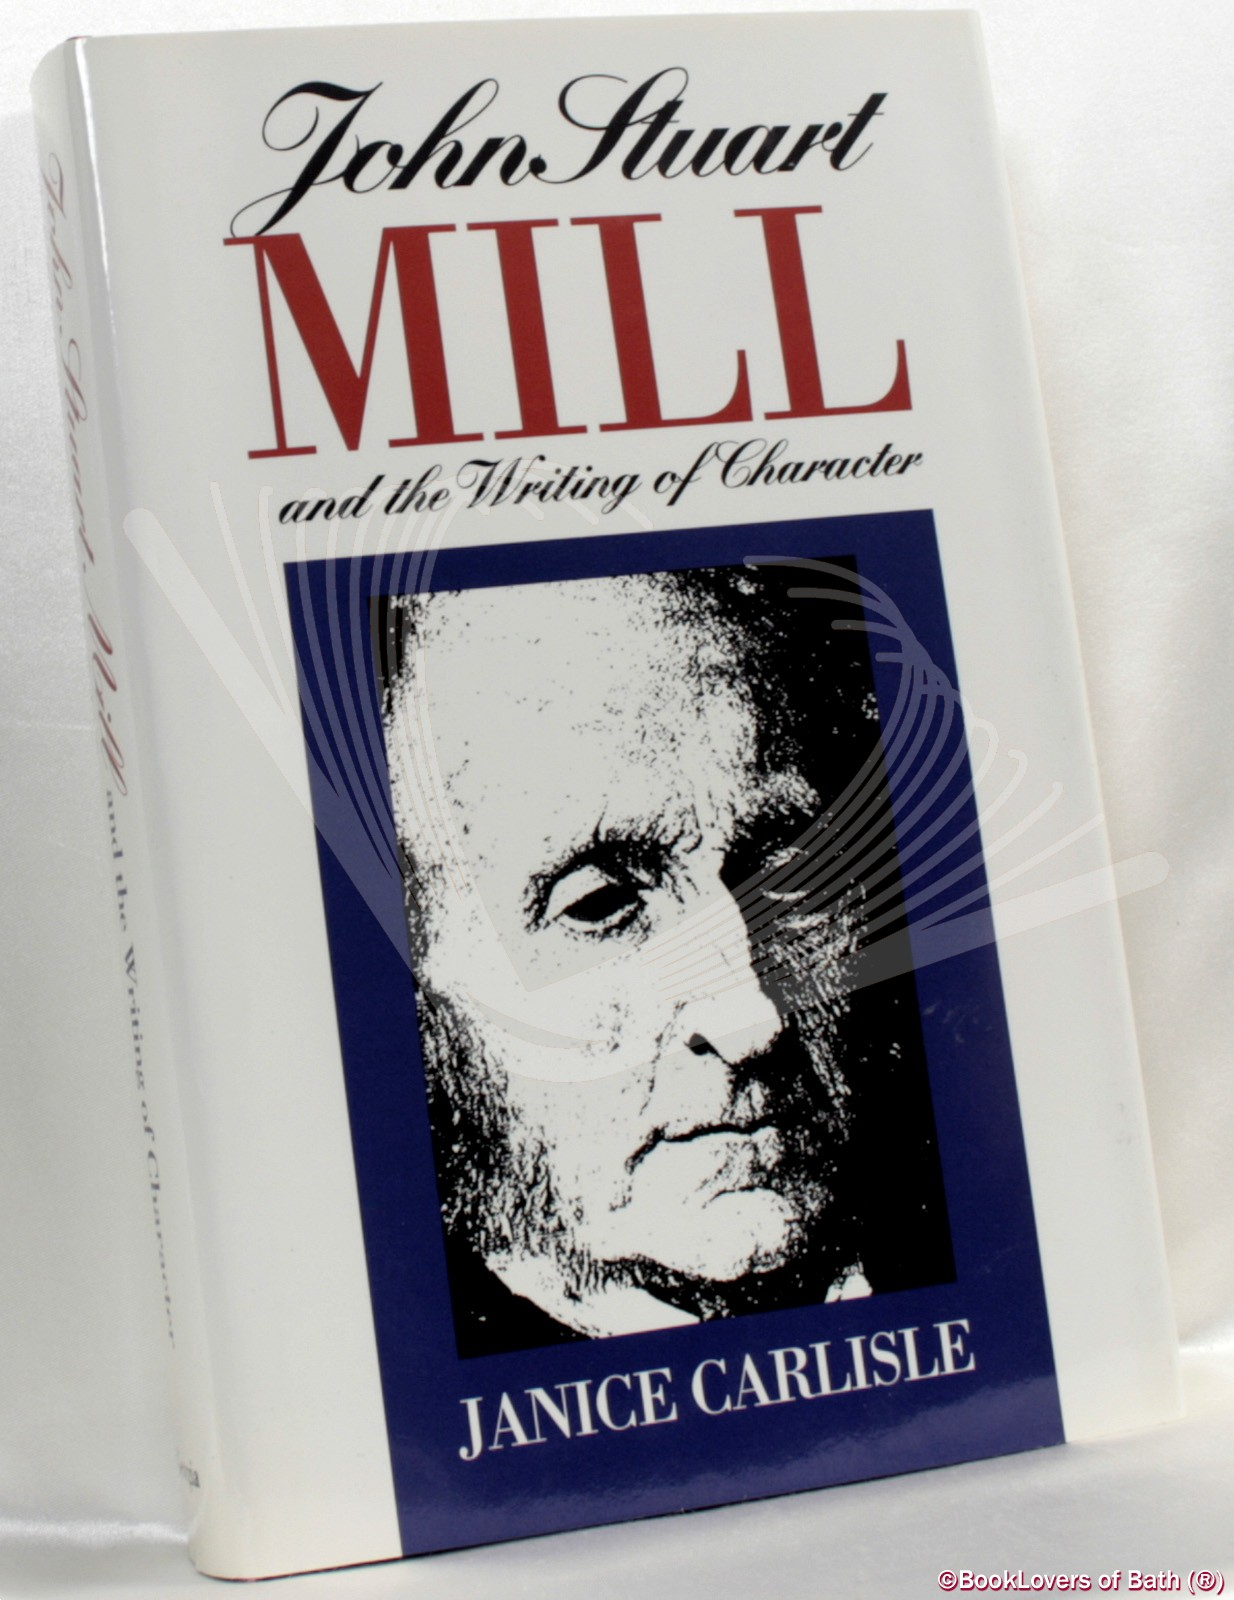 John Stuart Mill and the Writing of Character - Janice Carlisle